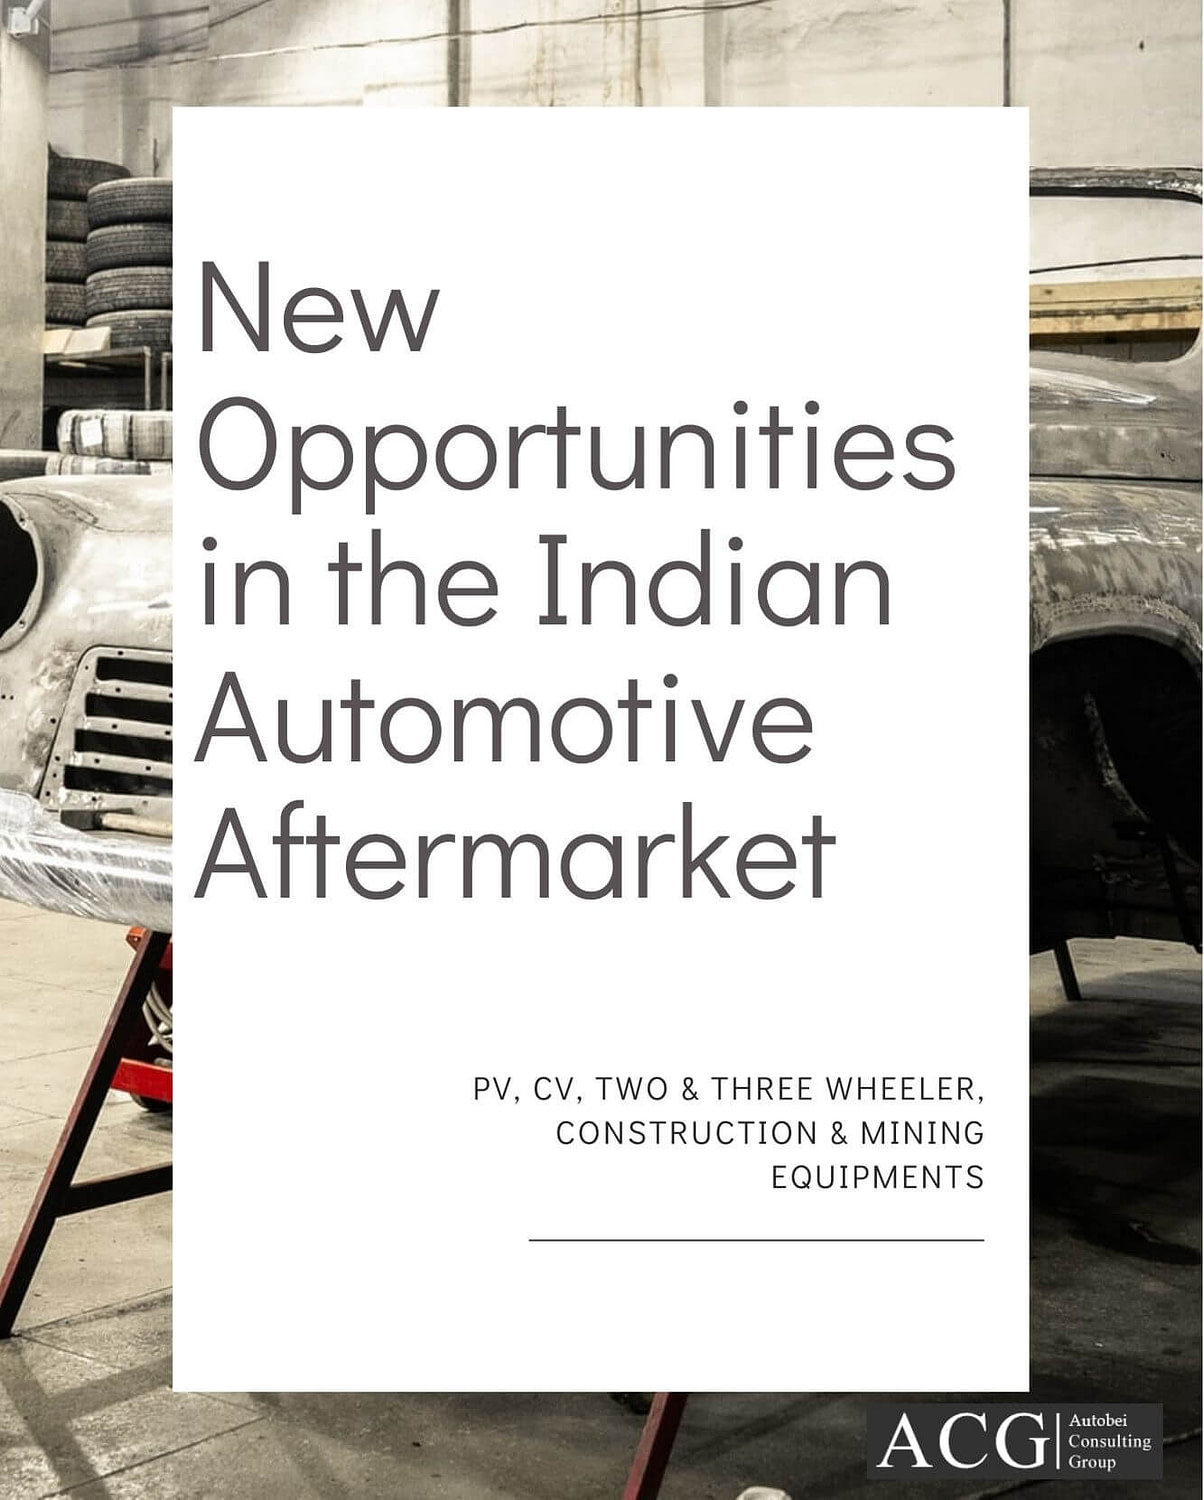 New Opportunities in the Indian Automotive Aftermarket